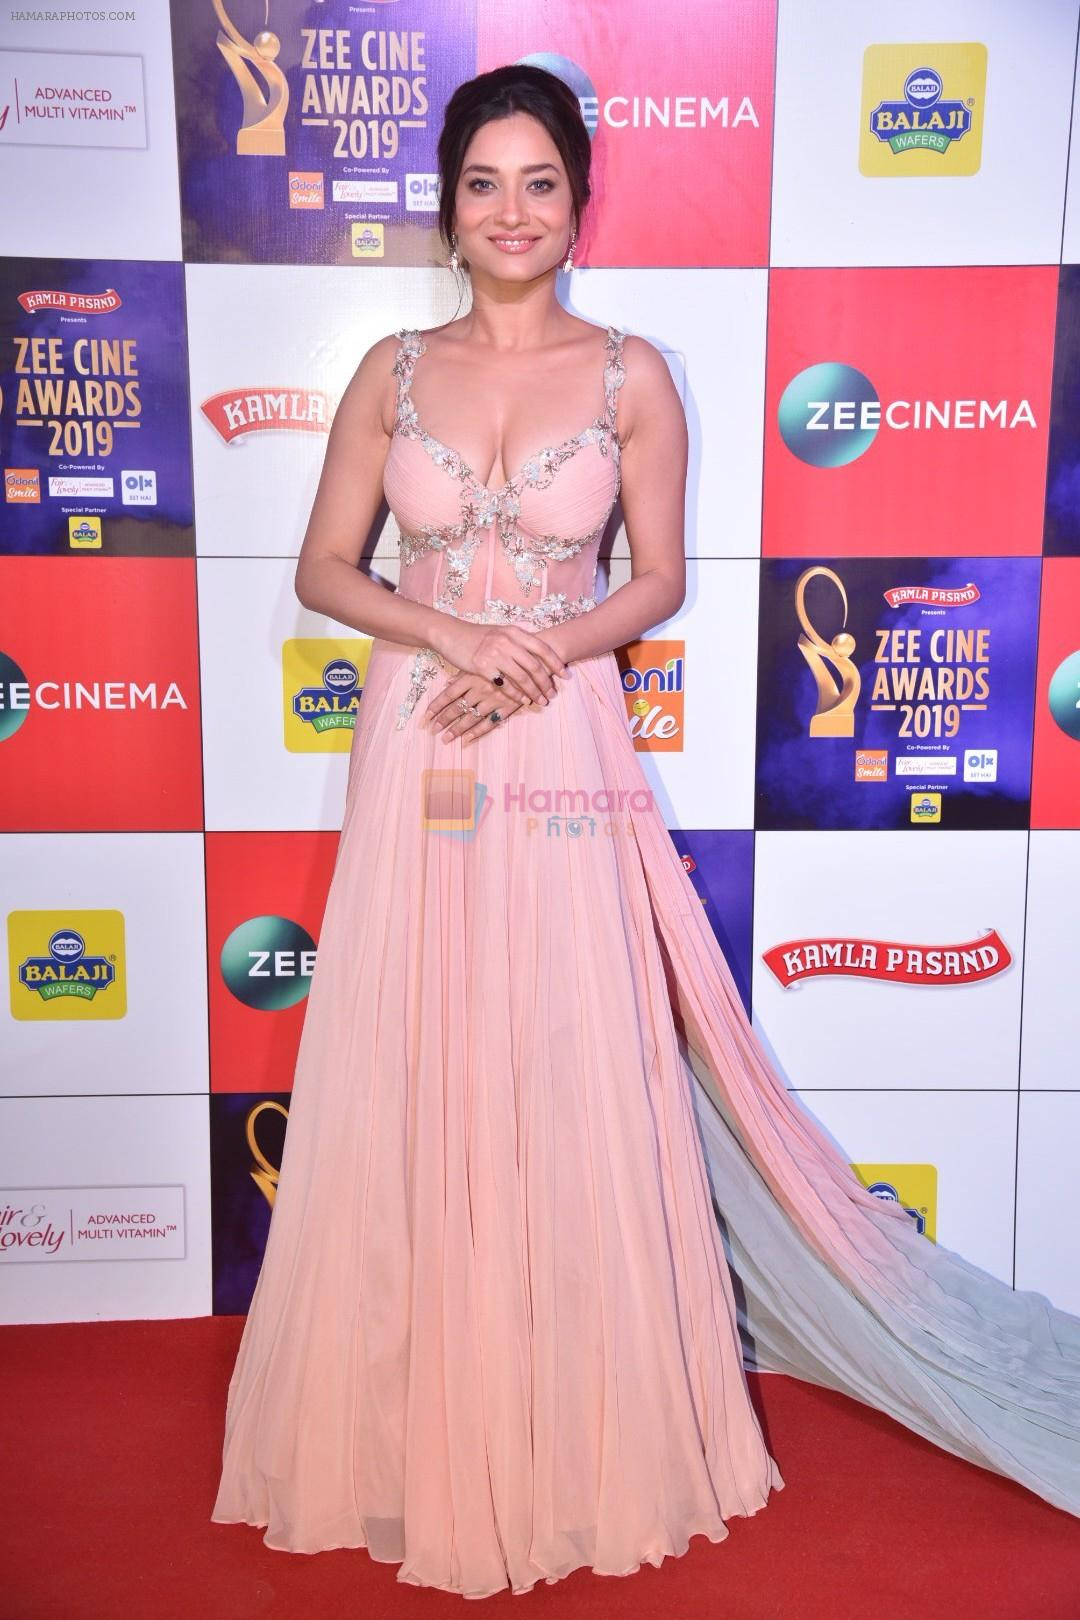 Ankita Lokhande at Zee cine awards red carpet on 19th March 2019